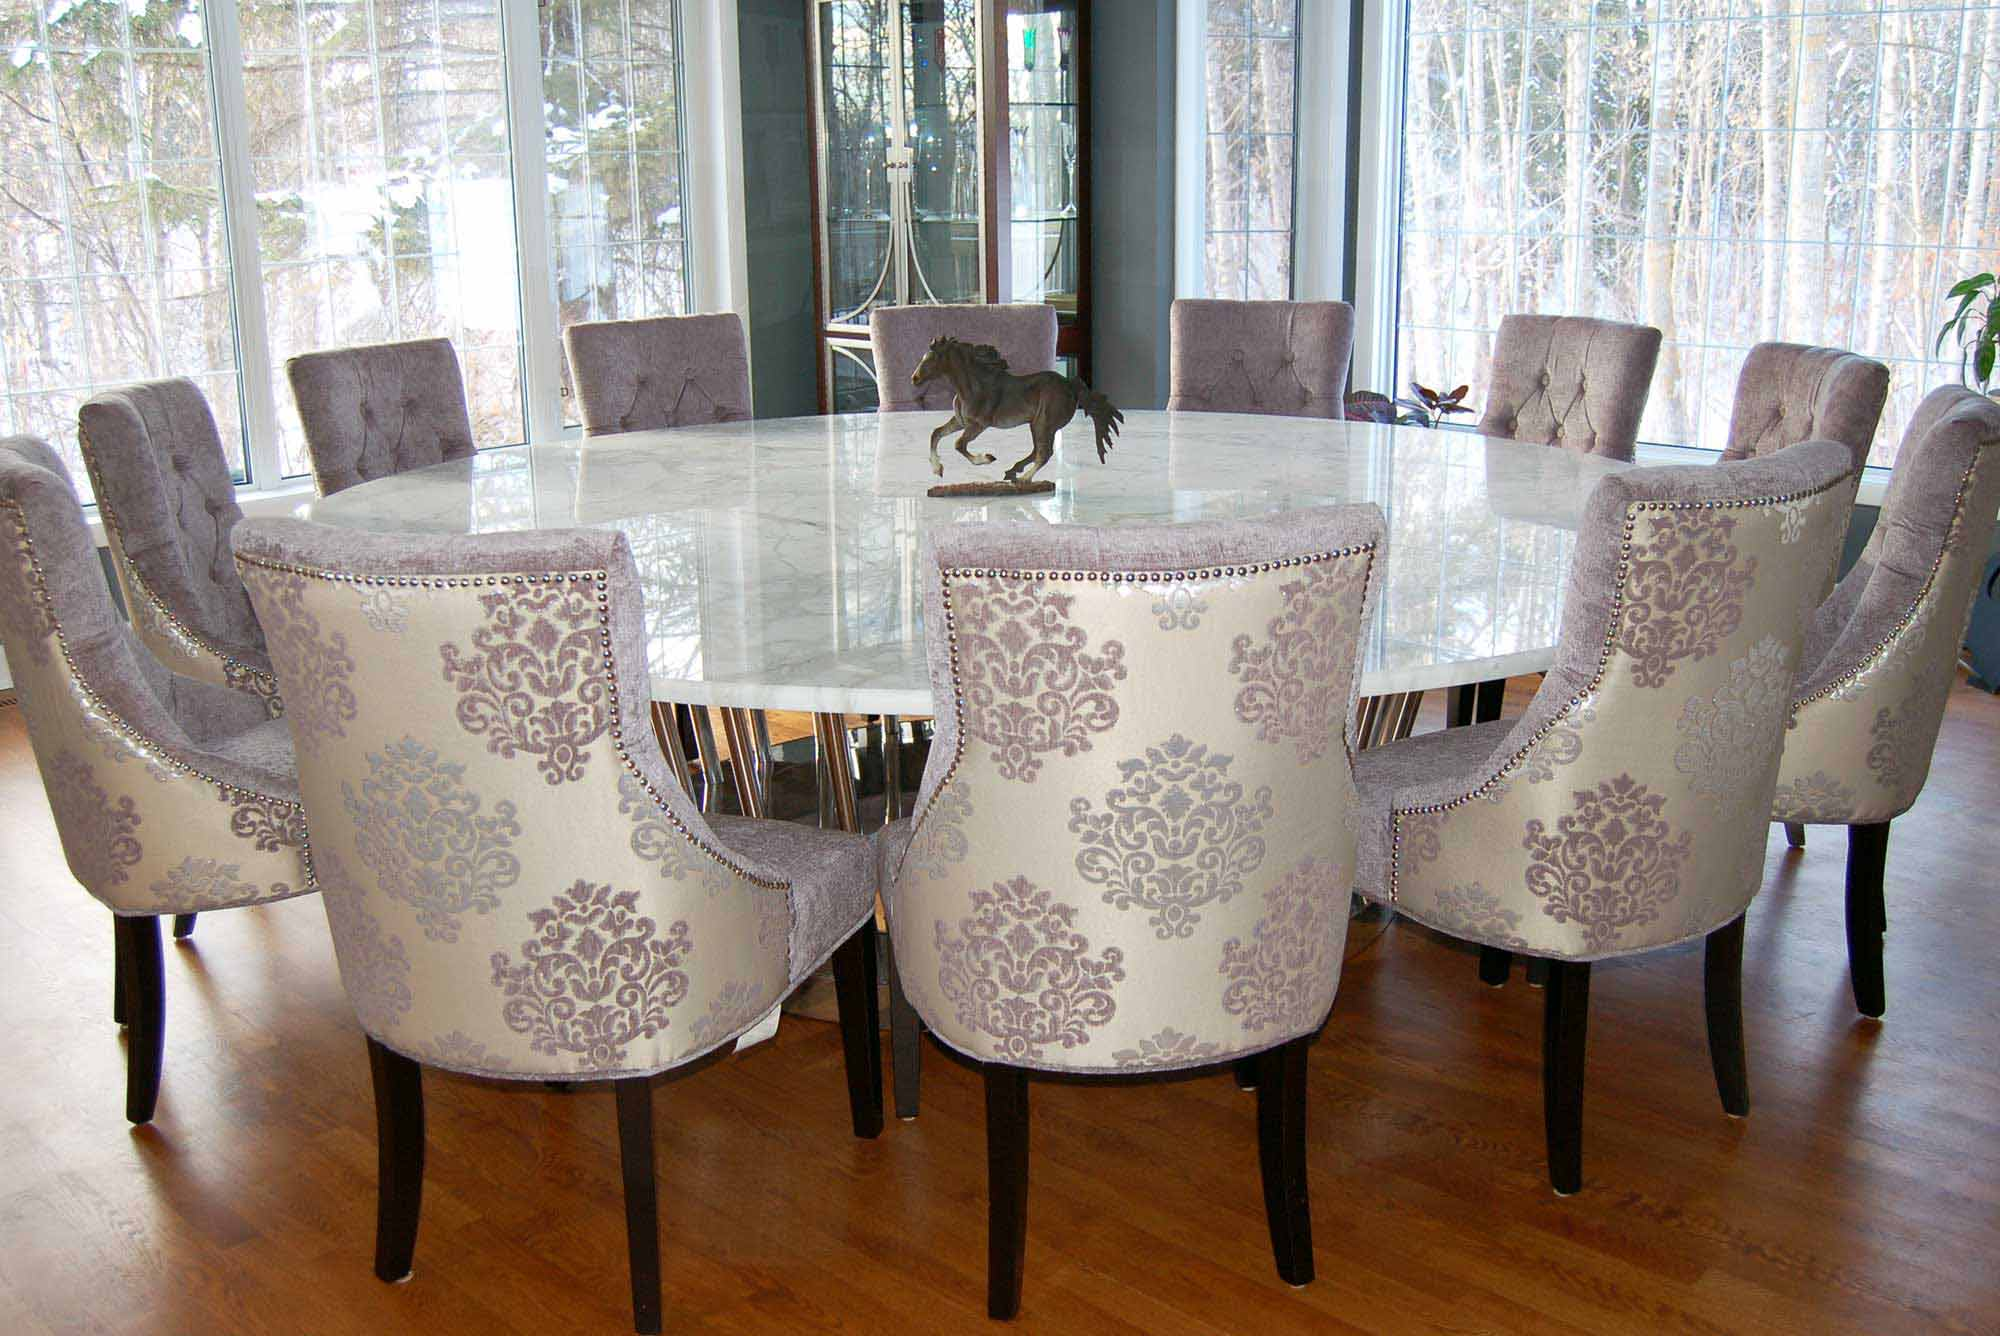 Dining Table Danielle Tussman